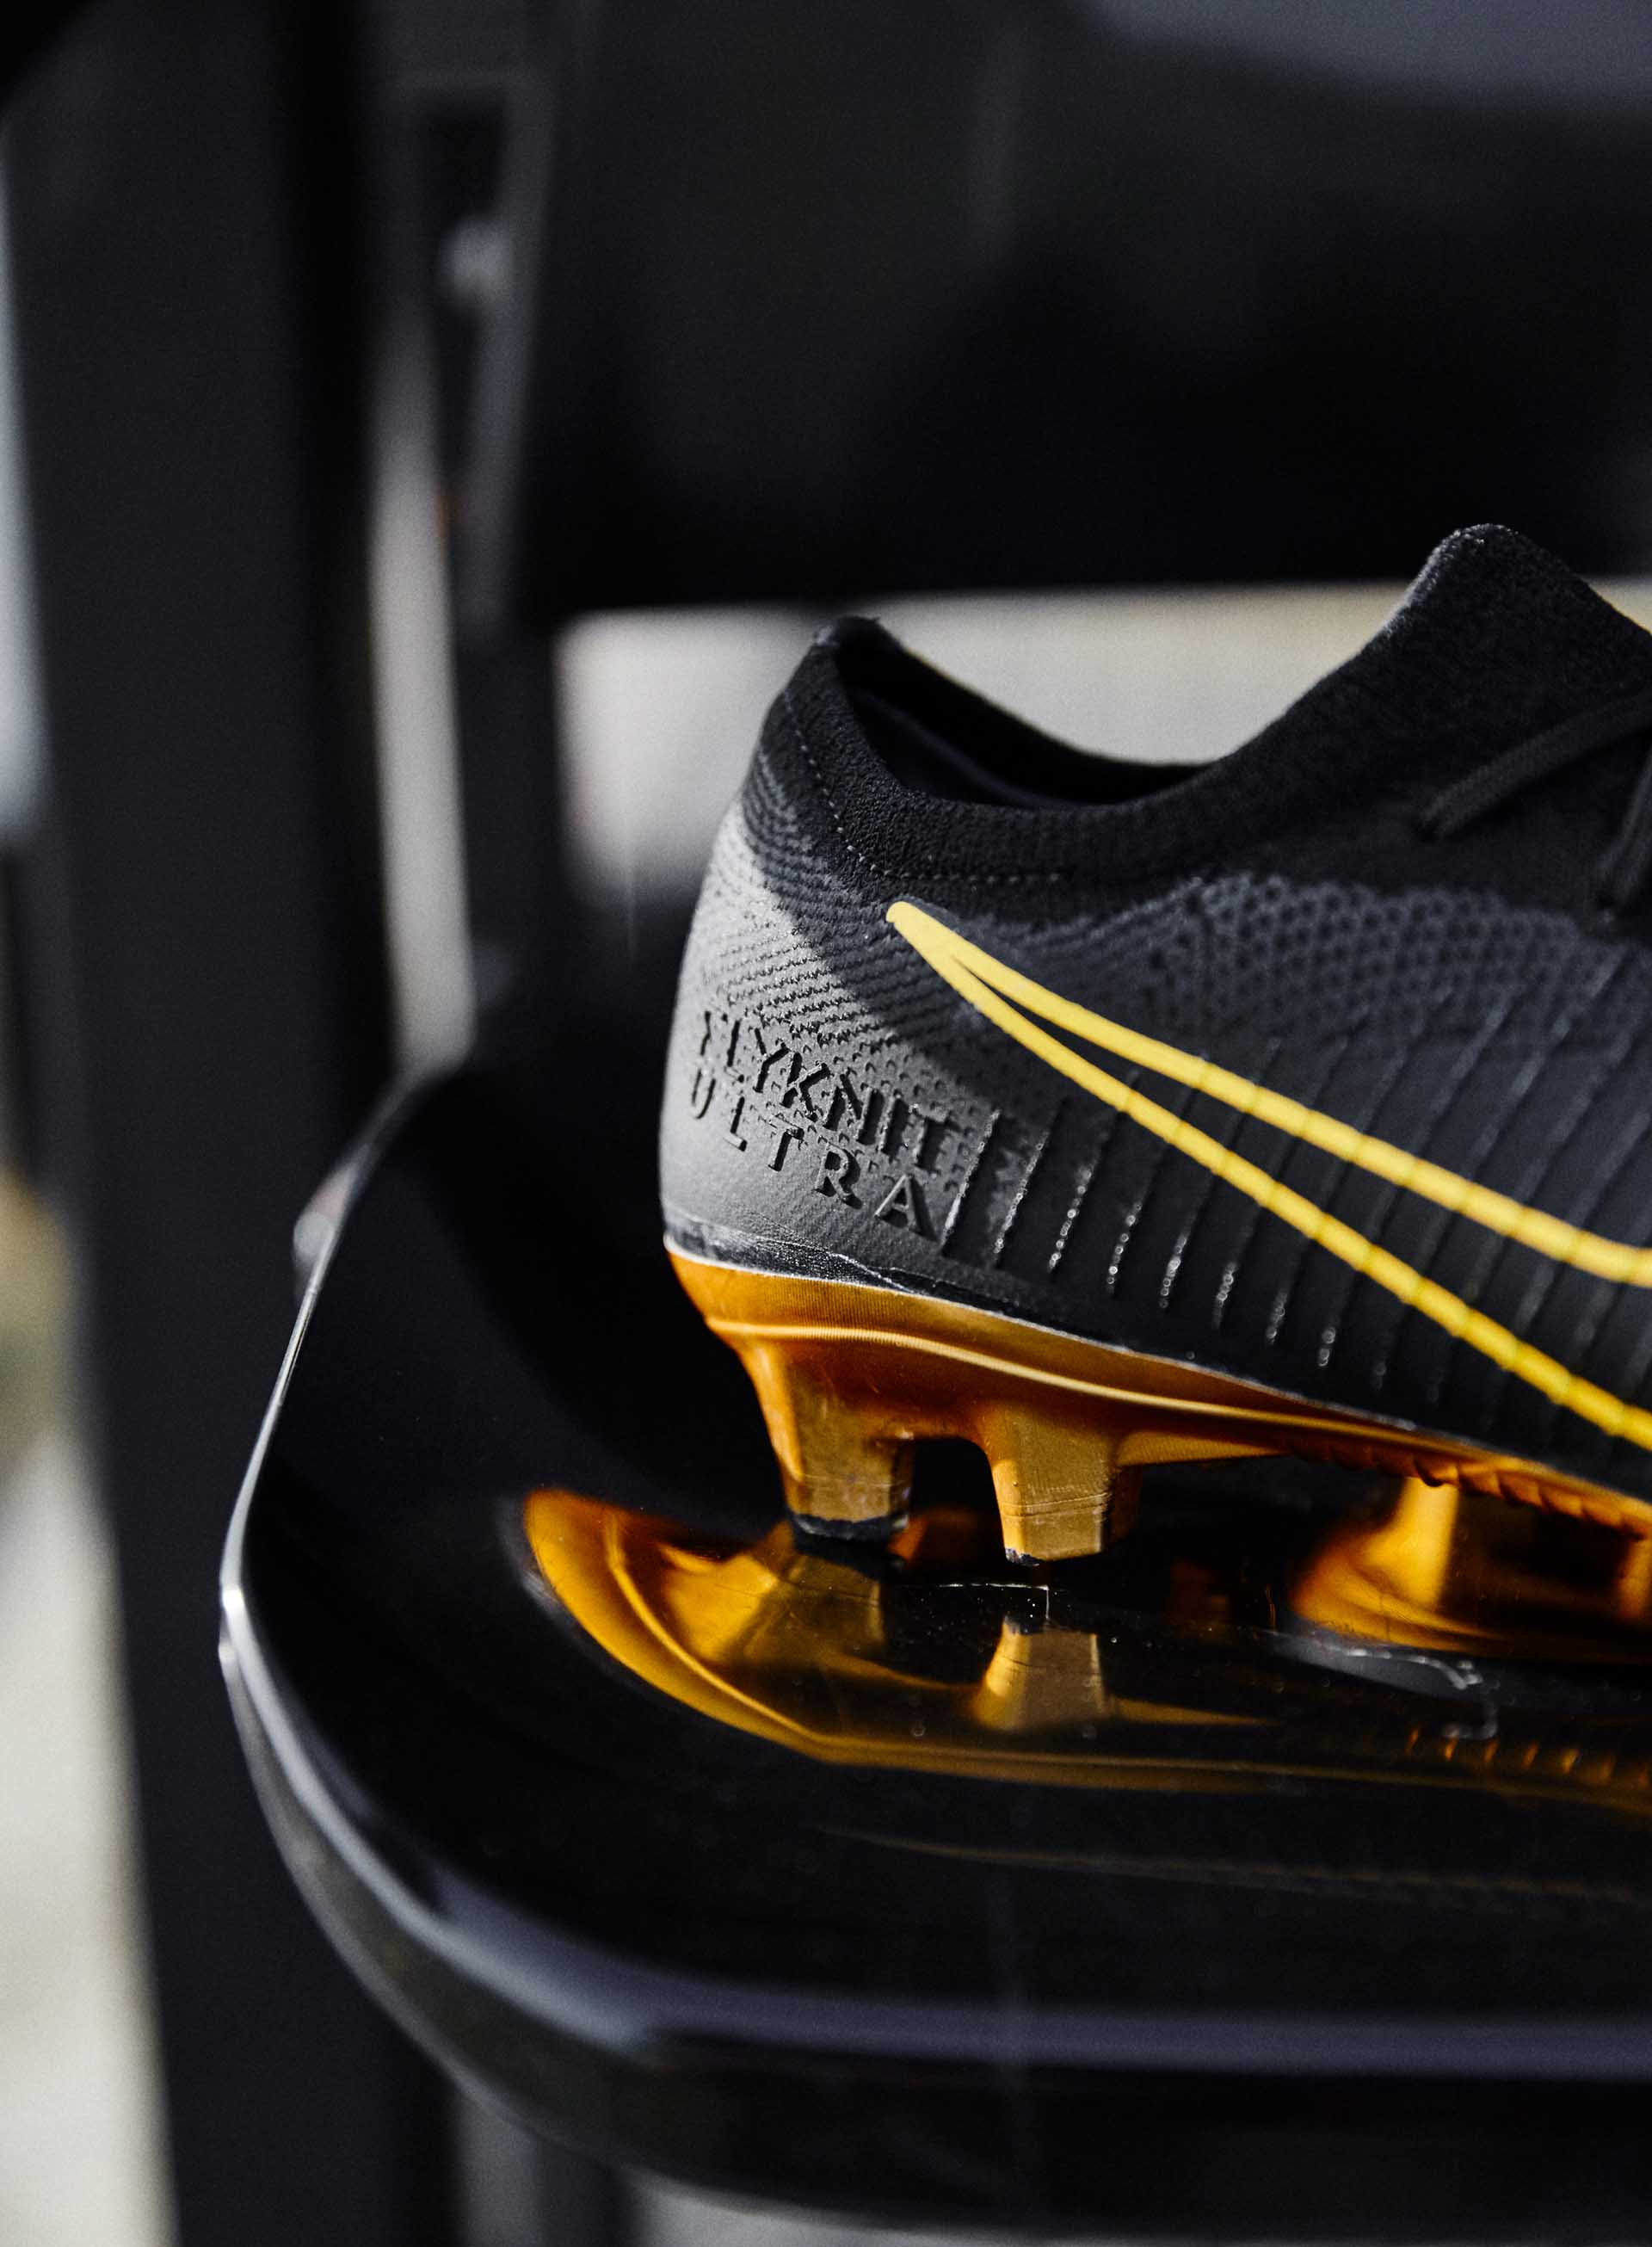 9a6017f49b8 Nike Launch The Mercurial Vapor Flyknit Ultra - SoccerBible